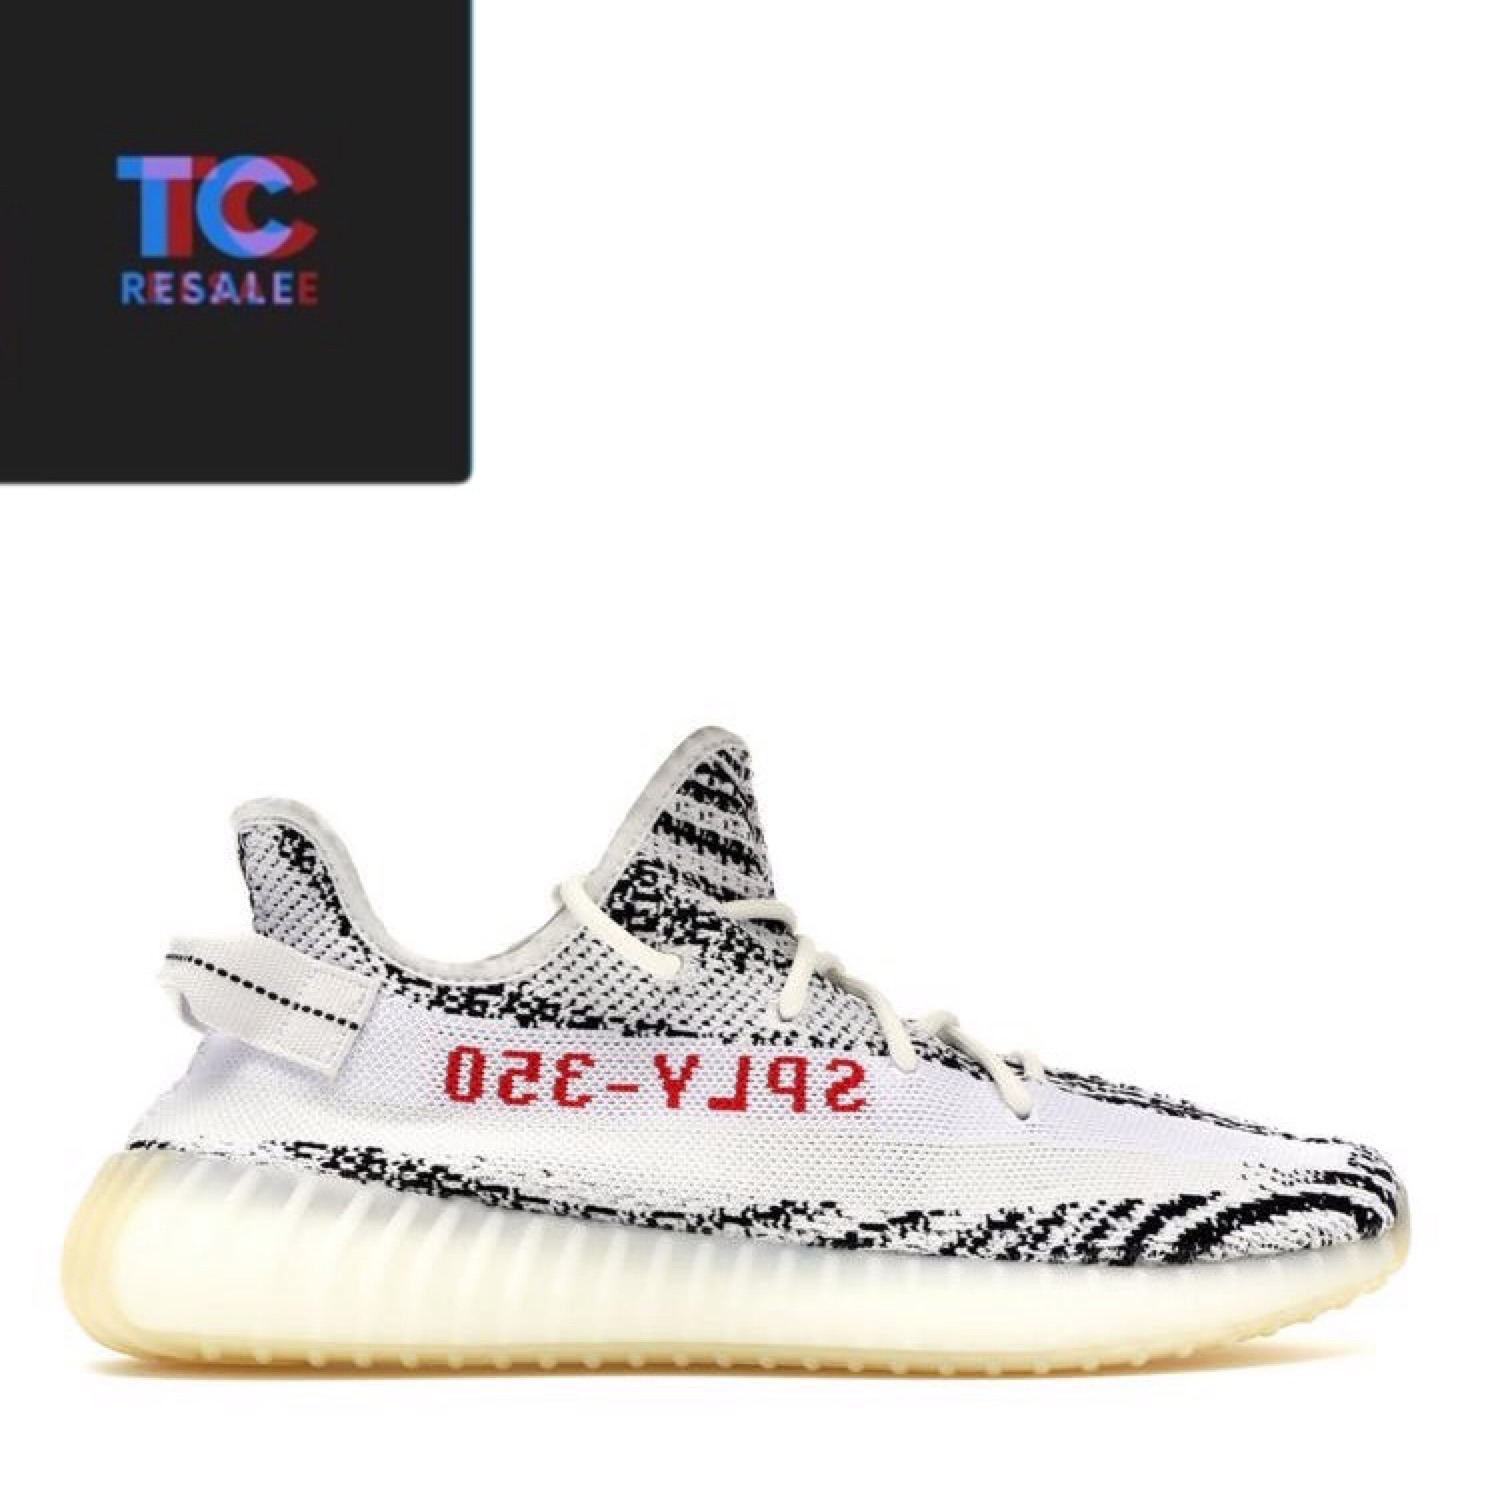 reputable site d3c48 dacdc Adidas Yeezy Boost 350 V2 Zebra